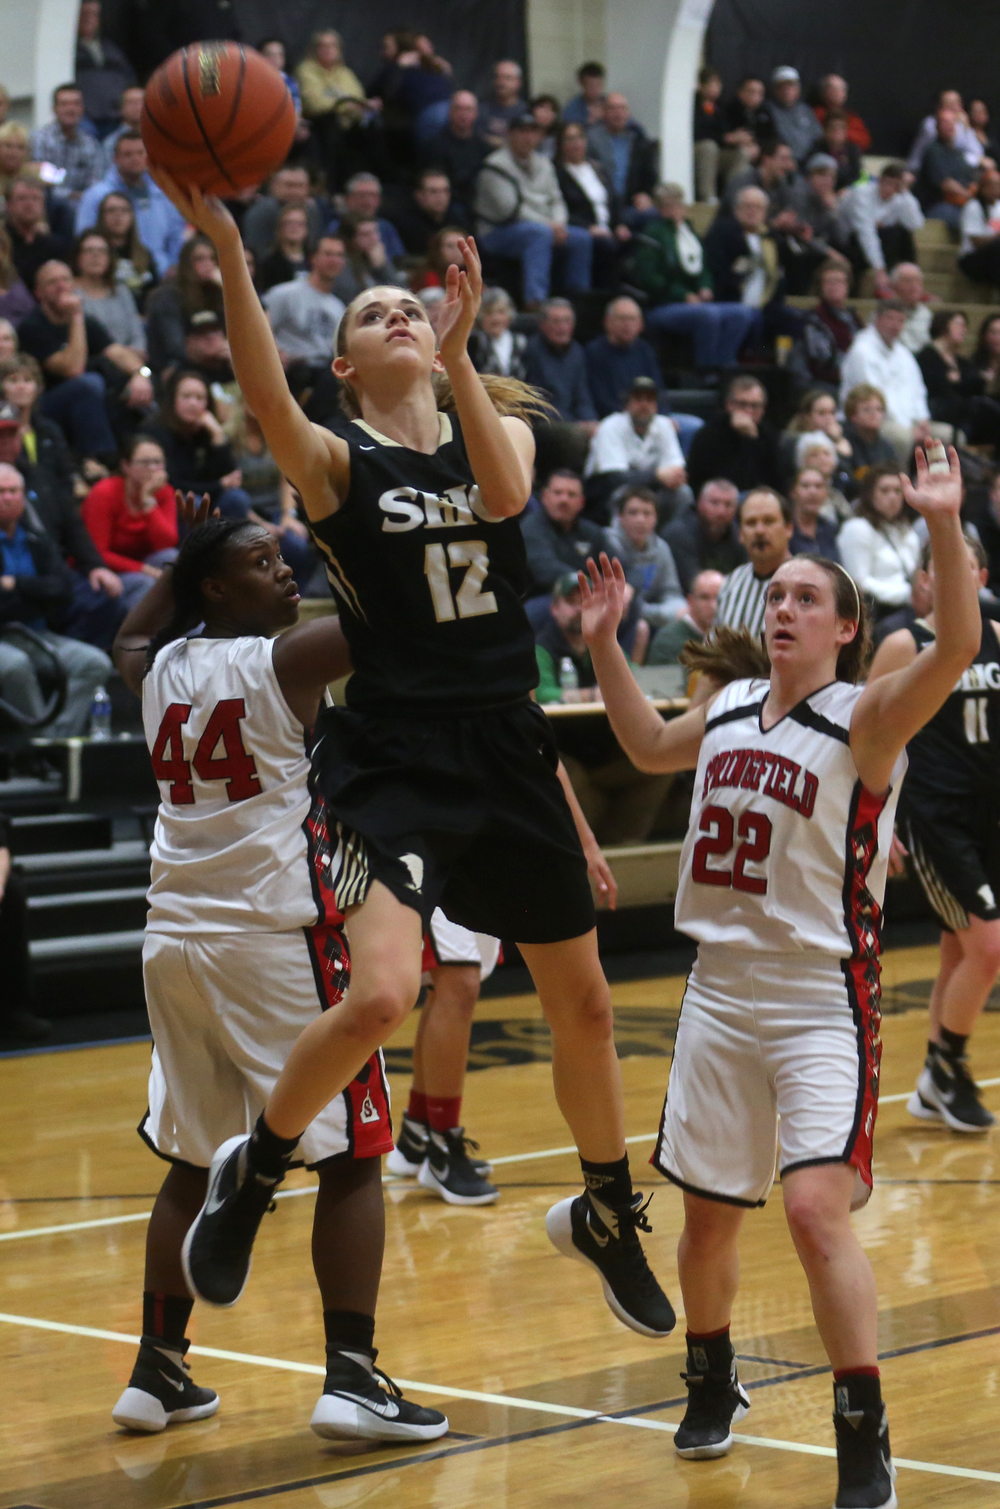 SHG player Catie Eck puts up two points late in the game.  David Spencer/The State Journal Register